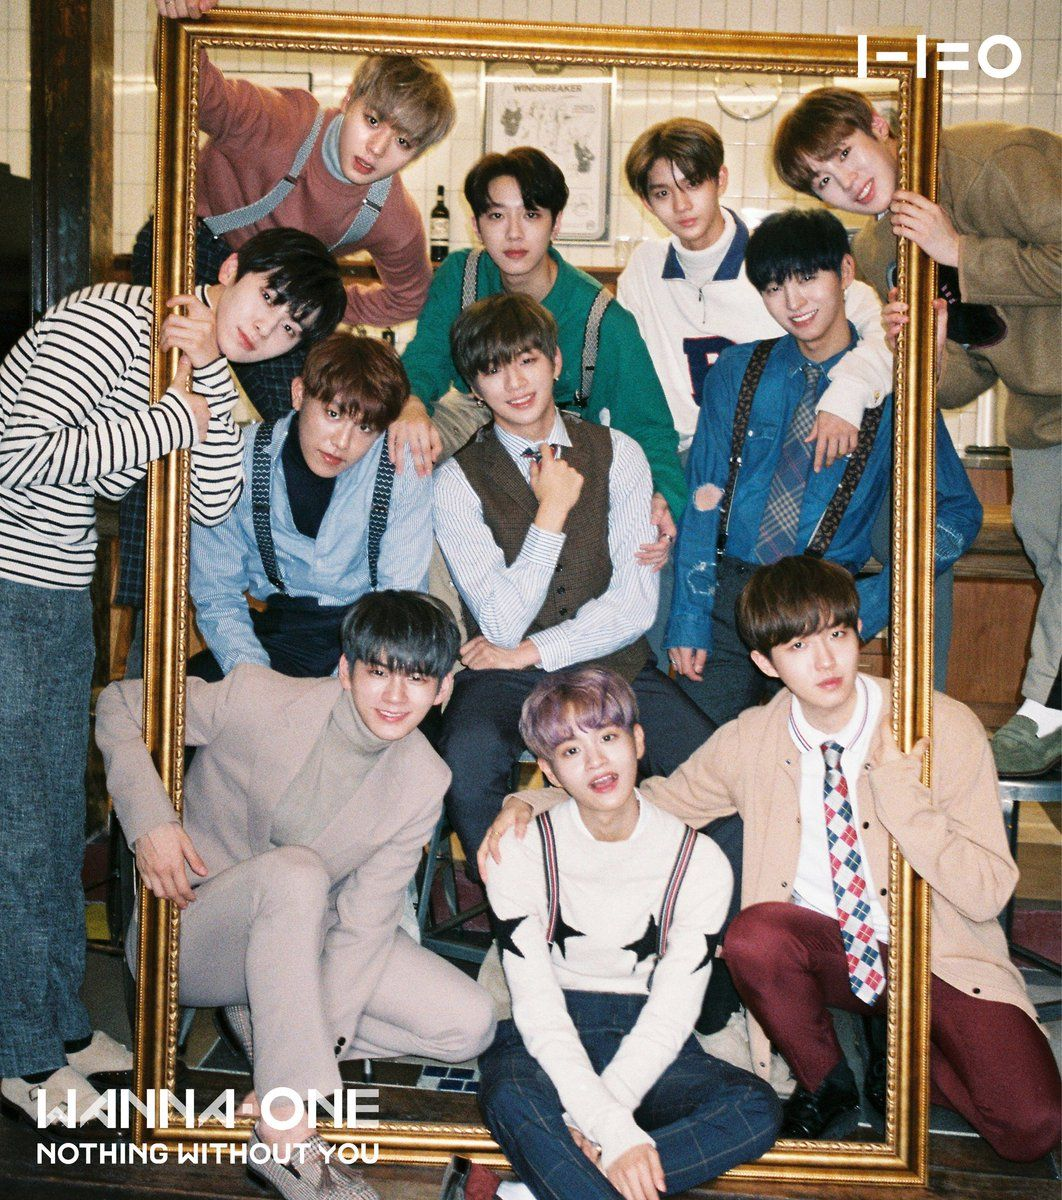 Wanna One On Nothing Without You Album Covers Album Releases